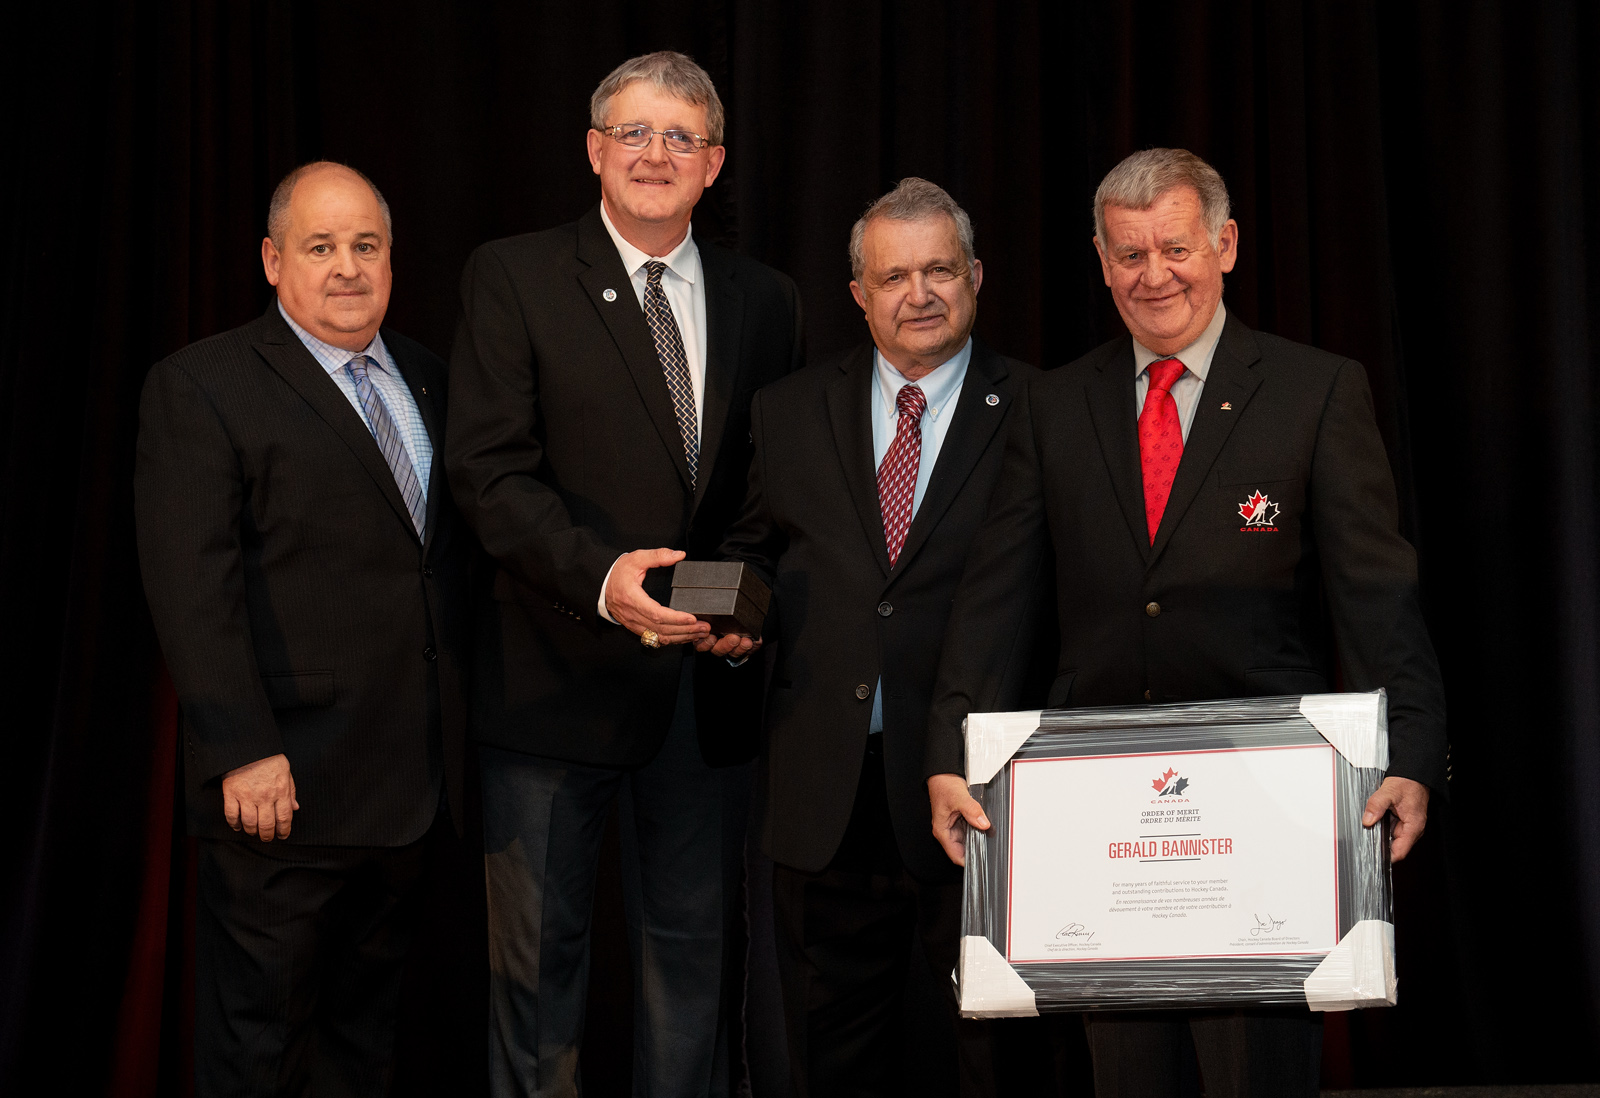 Gerald Bannister (Moncton, NB), recipient of Hockey Canada Order of Merit, Atlantic